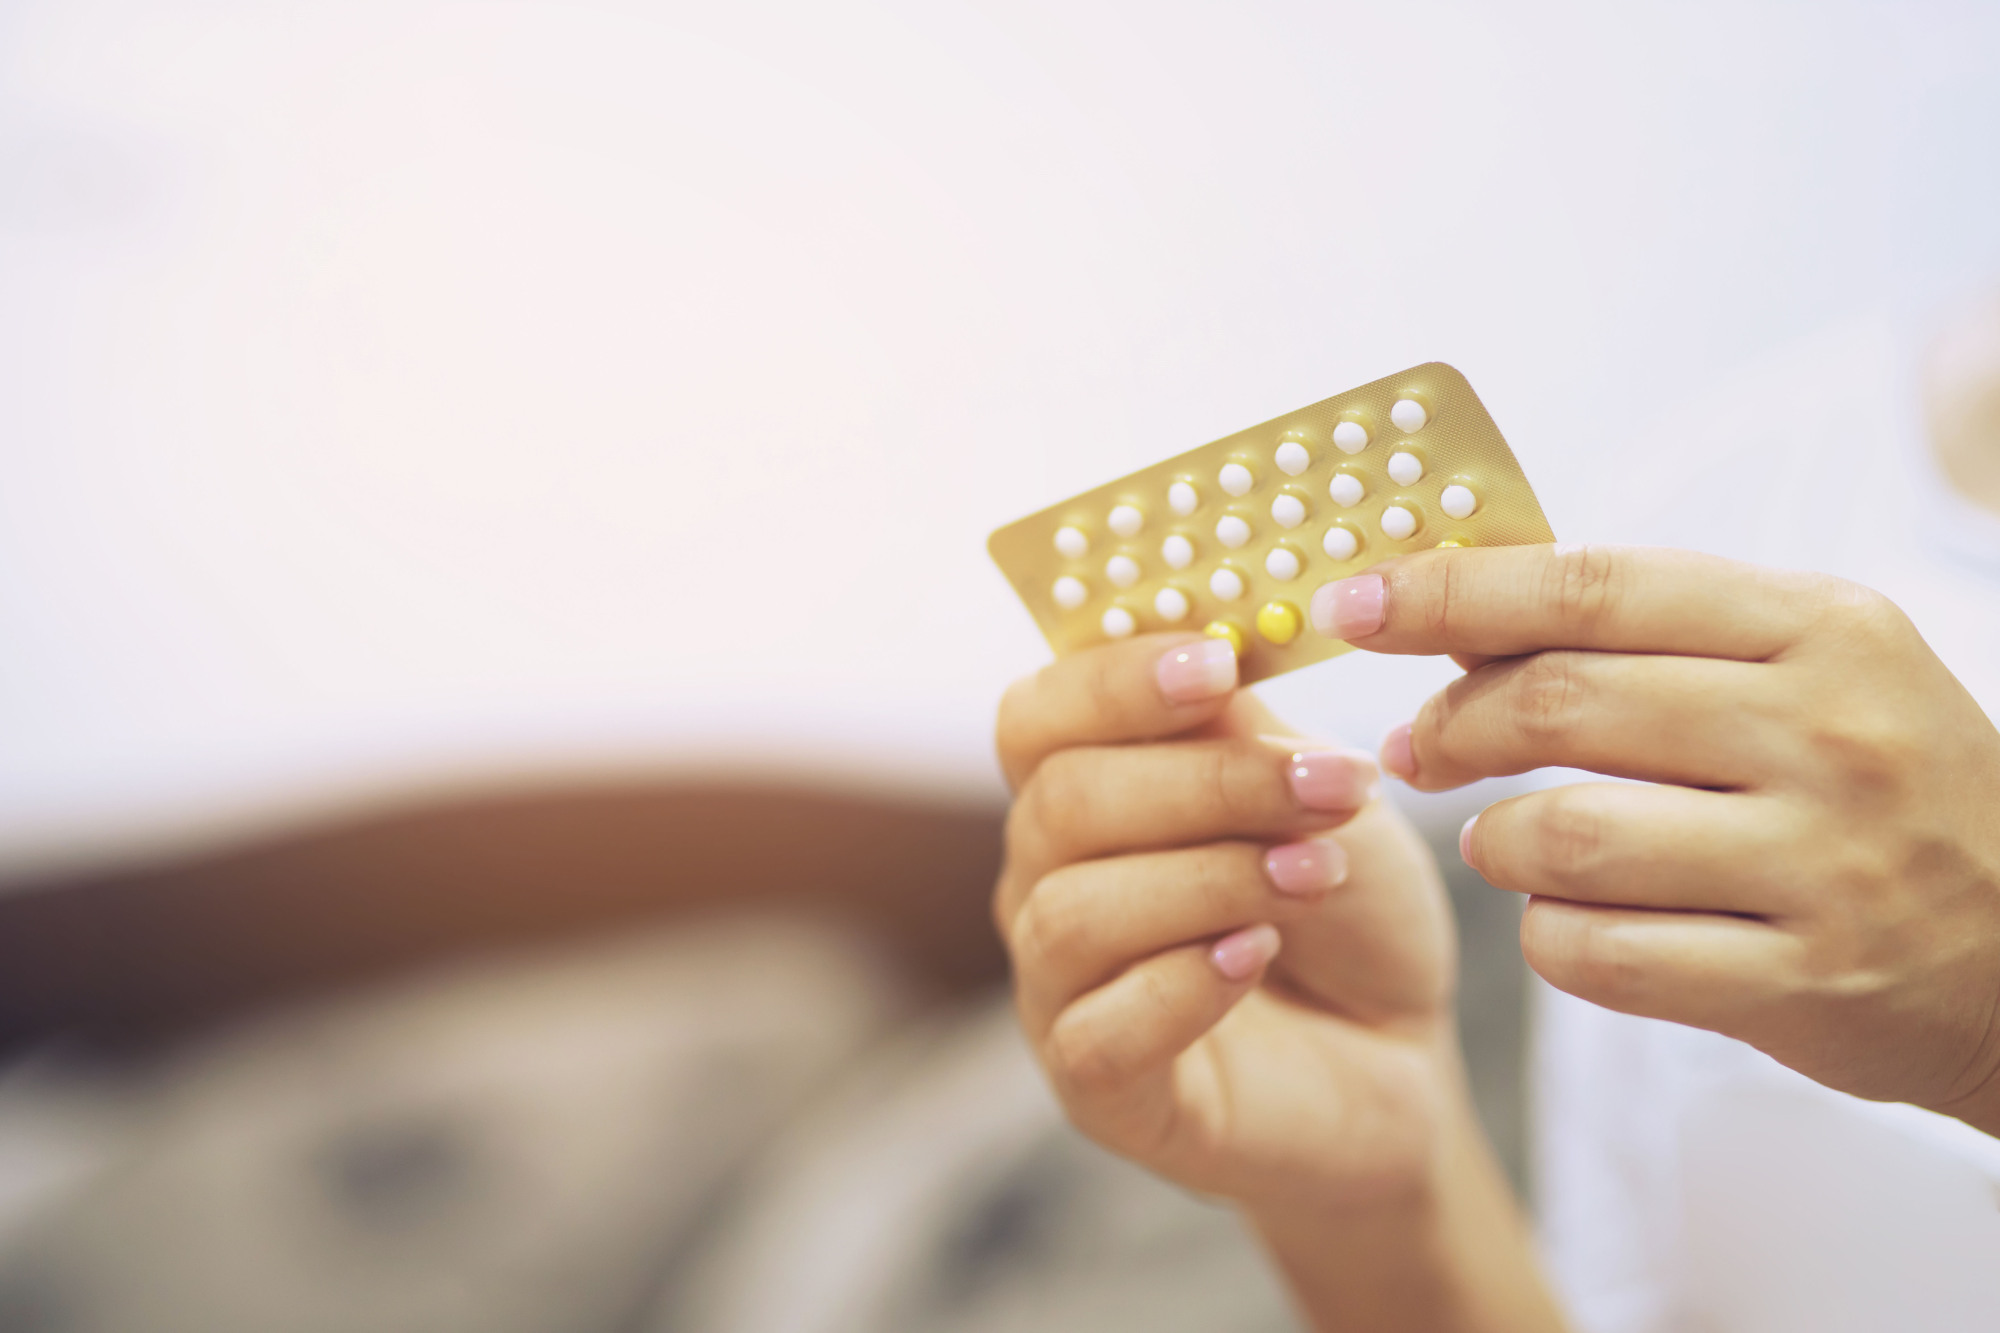 Tough pill to swallow: Birth control pills are used by only 1 percent of Japanese women of child-bearing age, mainly owing to their high cost and hurdles in obtaining a prescription. | GETTY IMAGES